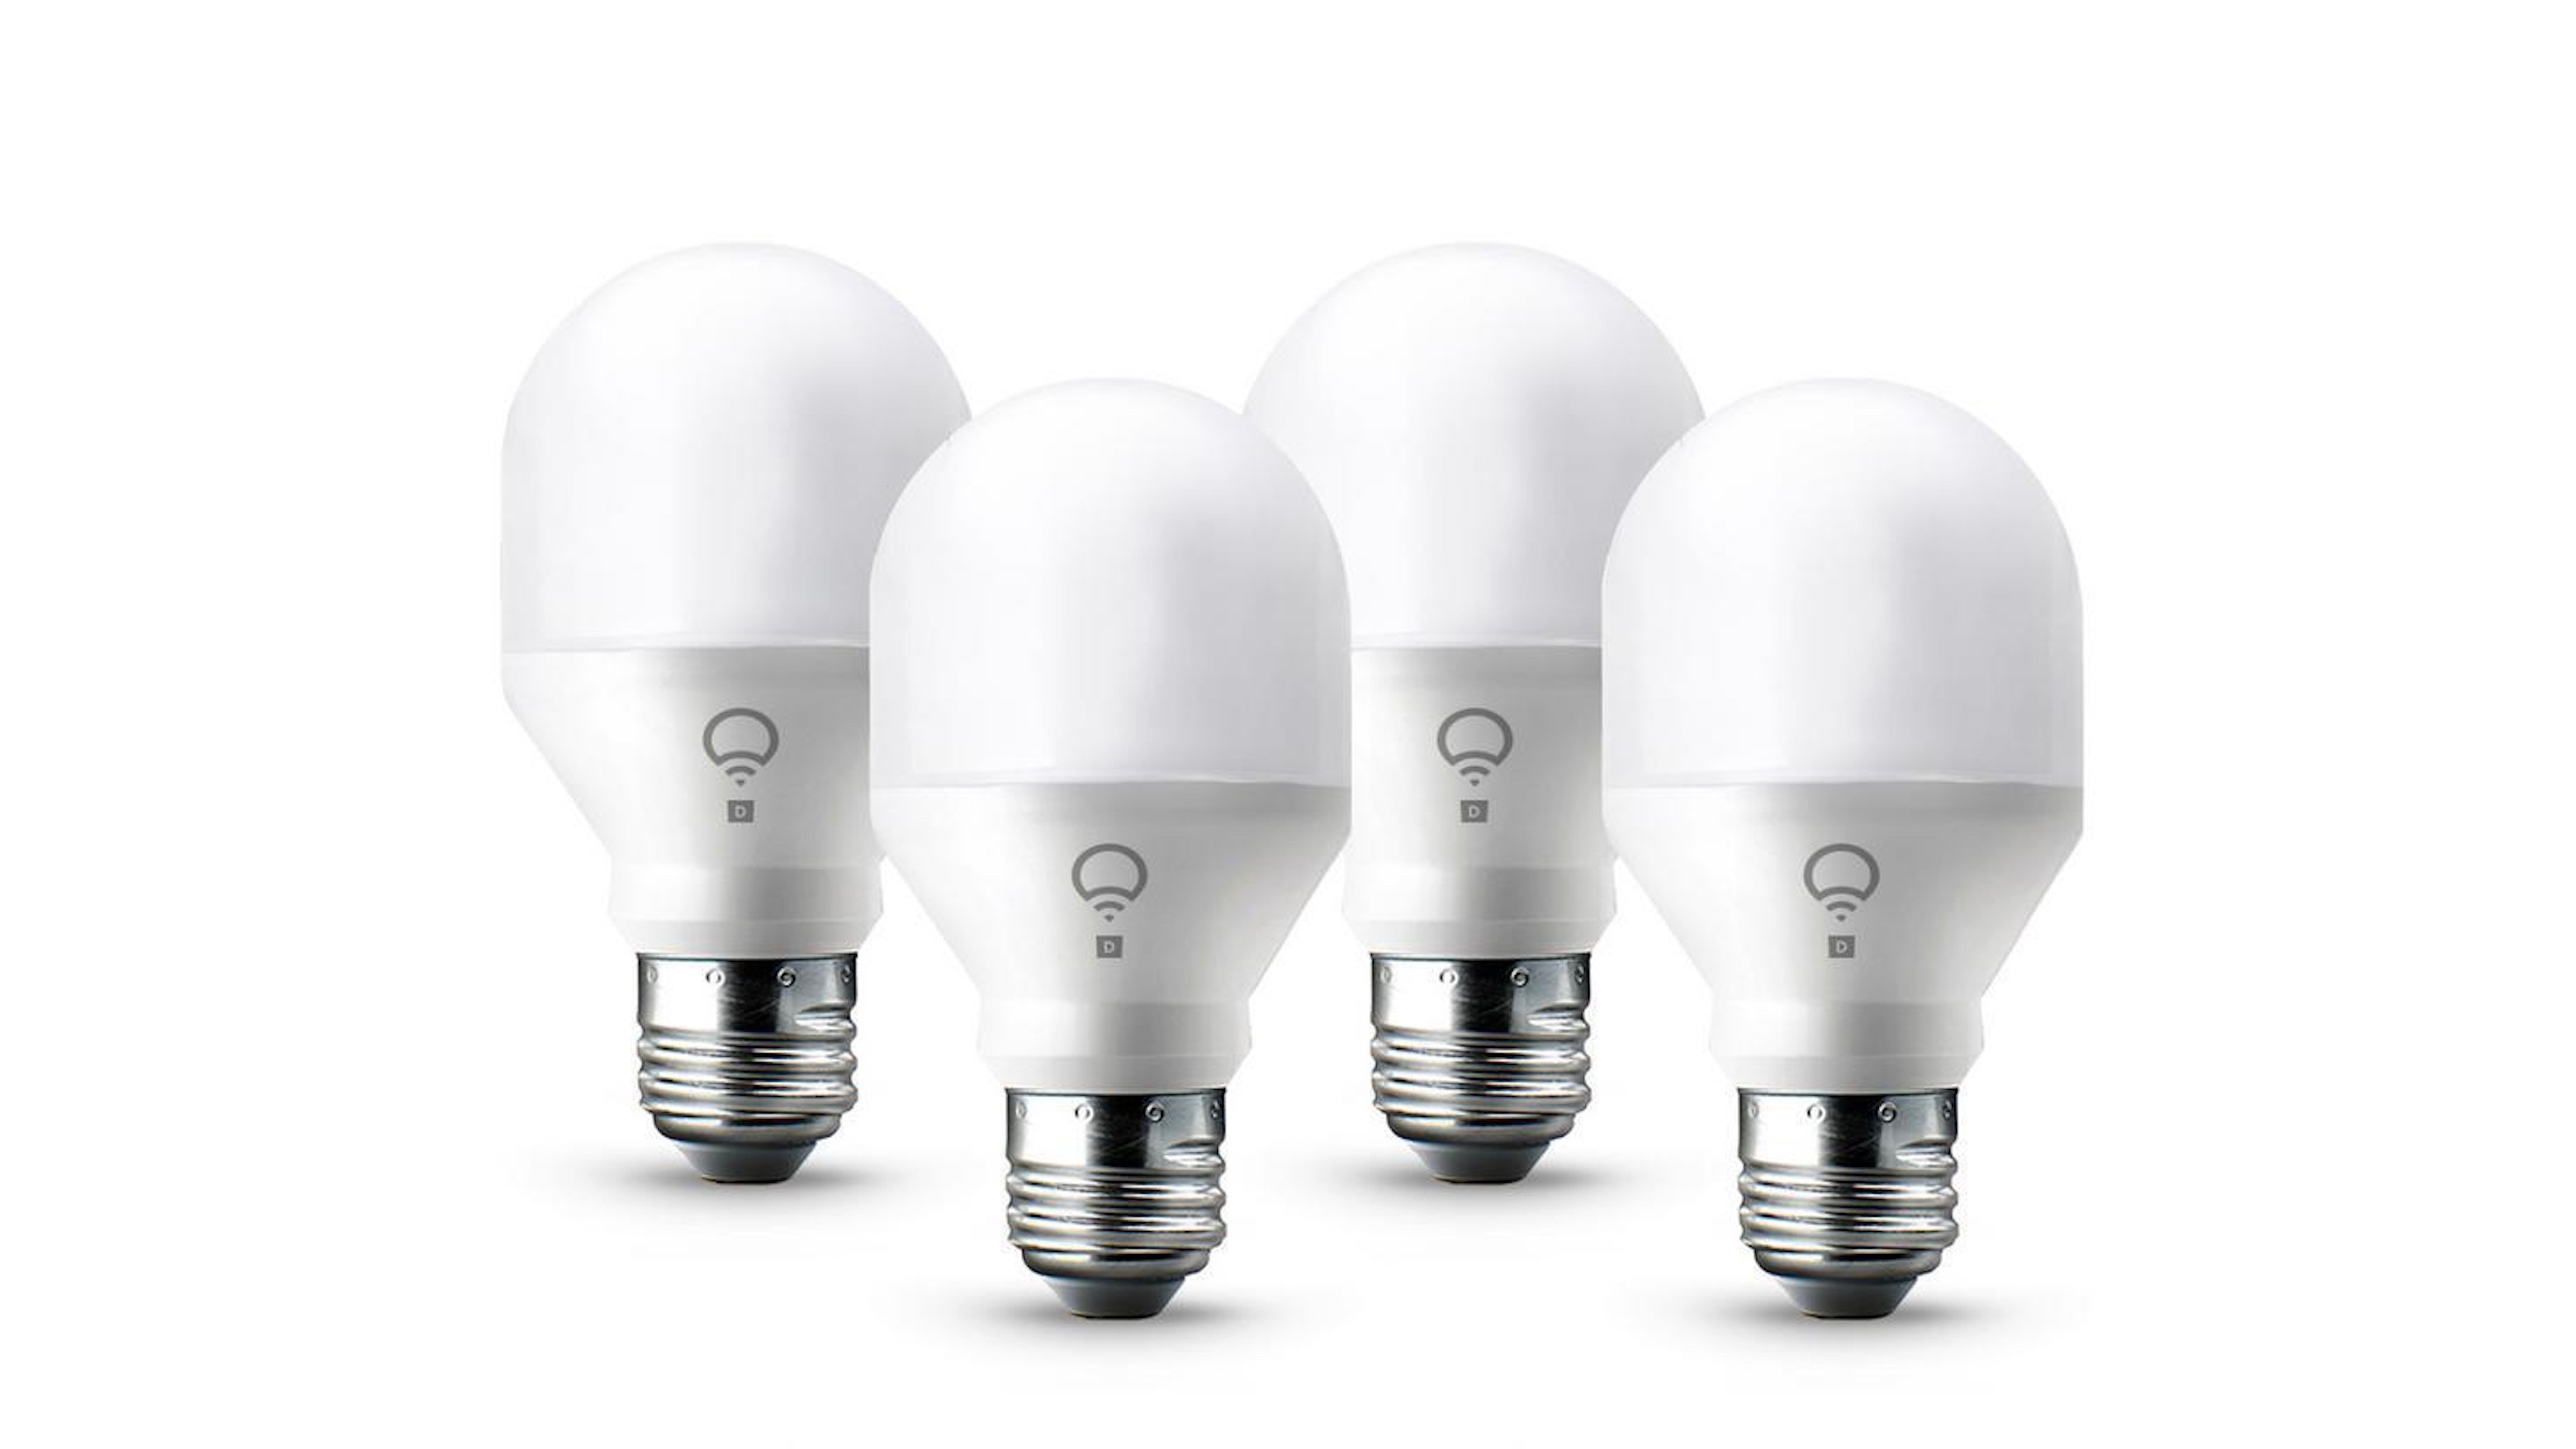 Lifx adds improved HomeKit integration to its entry-level Day & Dusk bulbs